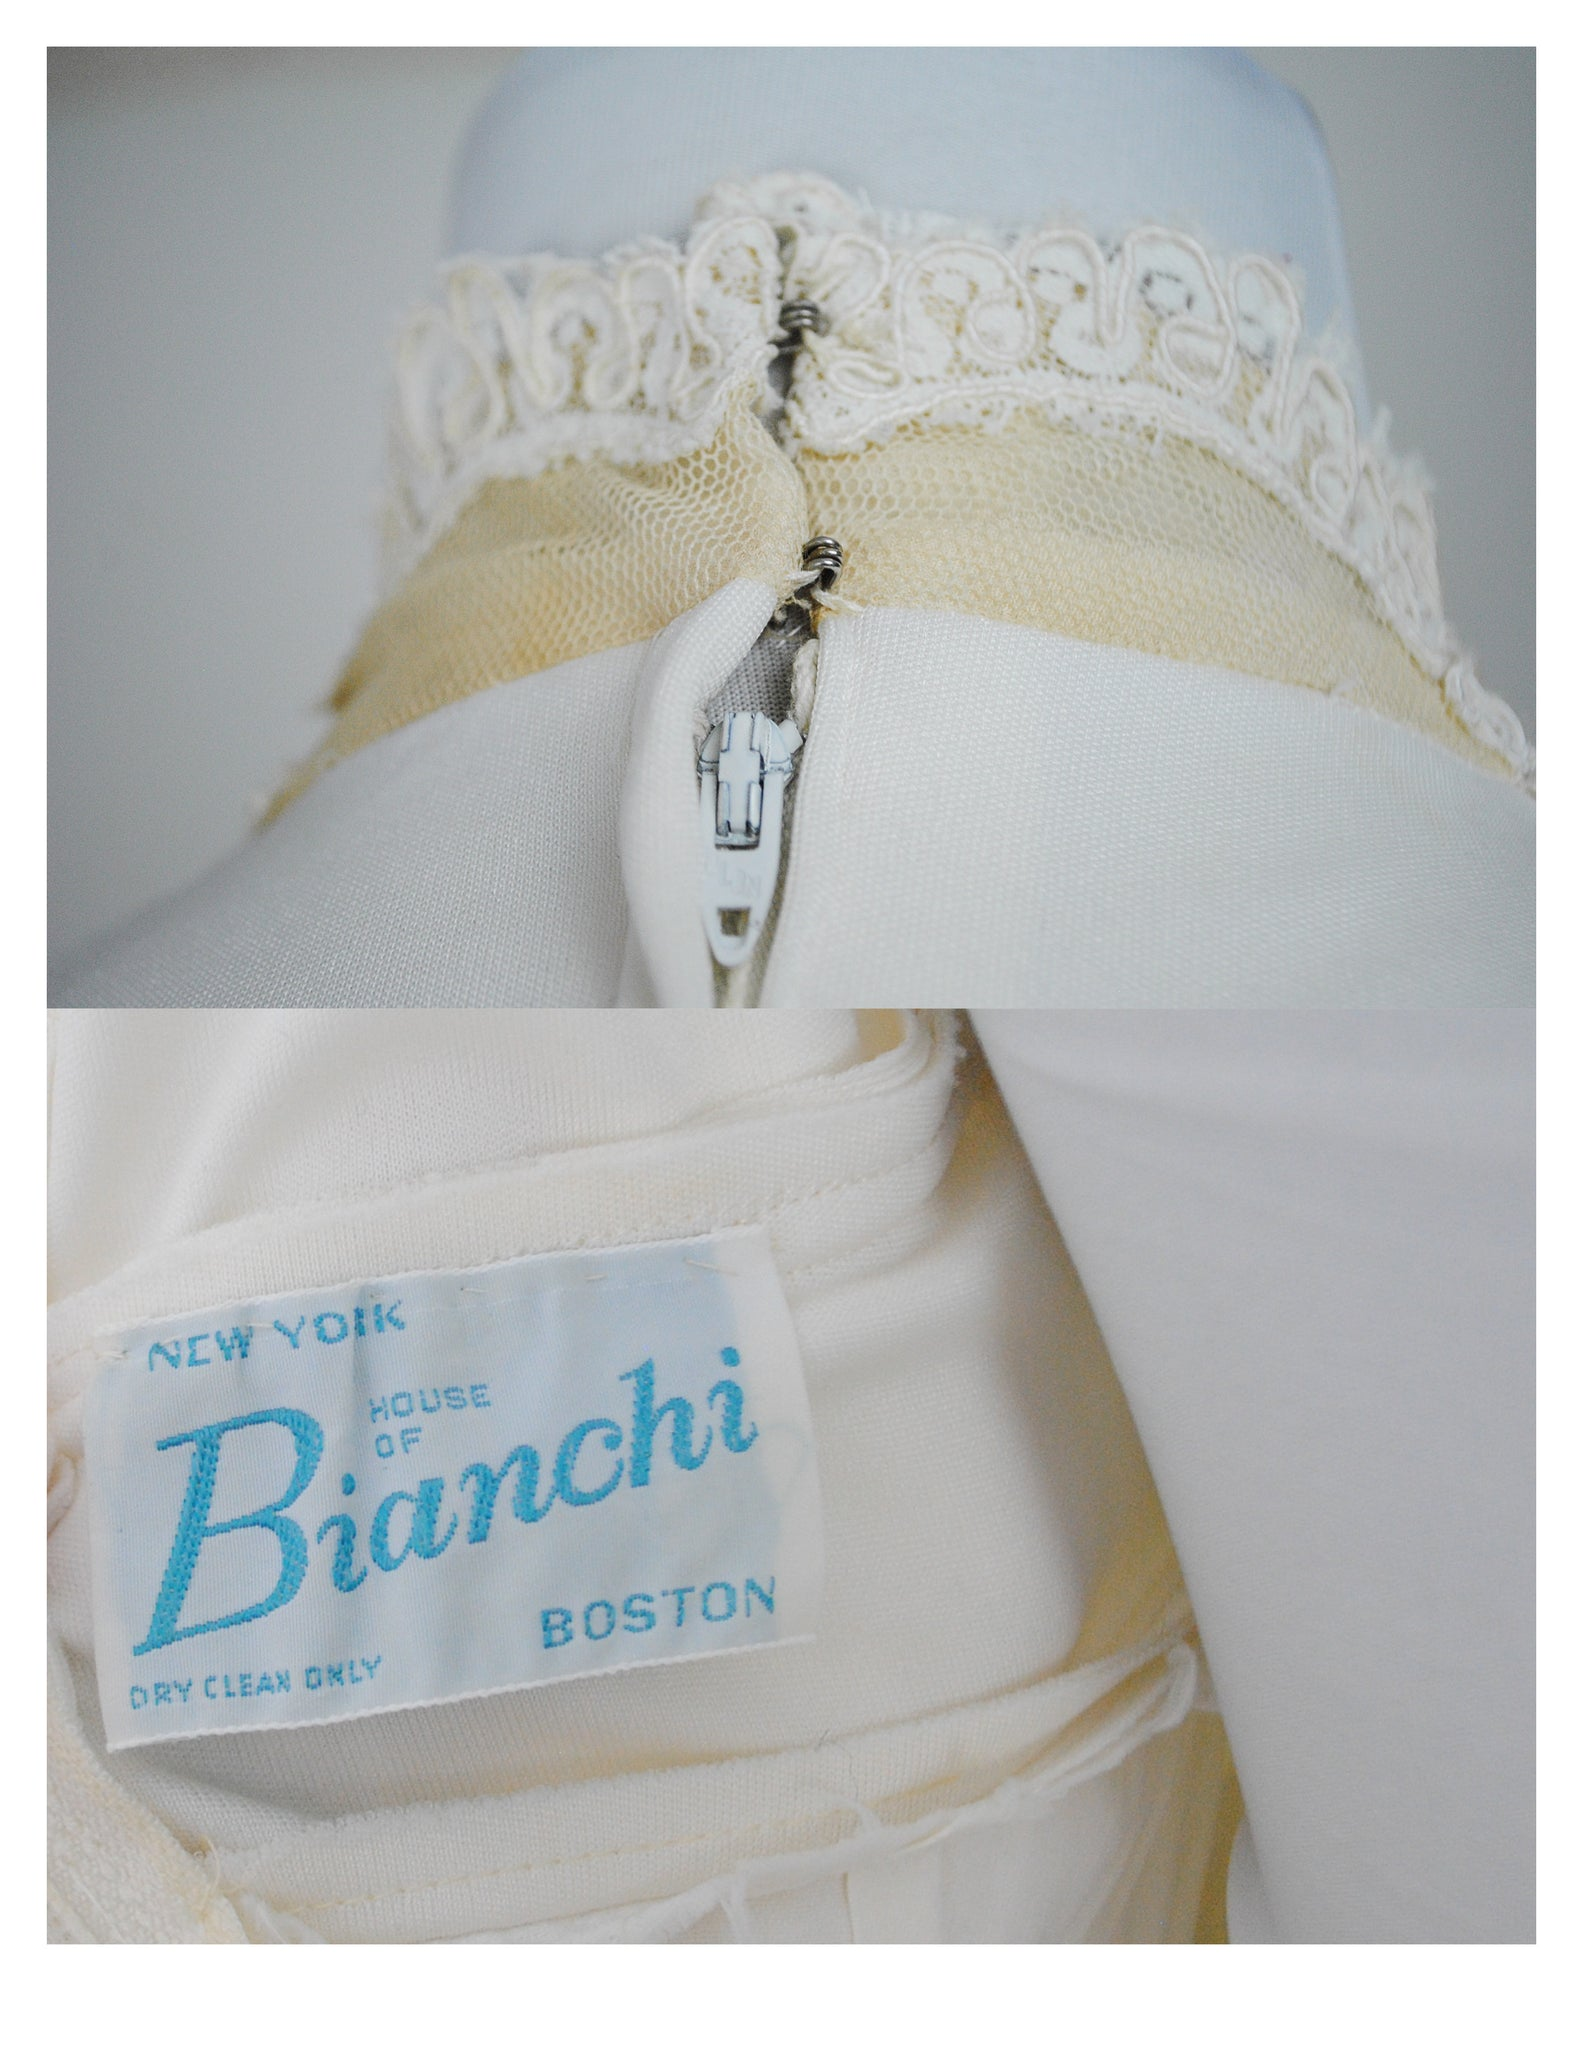 1960/70s House of Bianchi Bridal Gown – Black Cat Clothiers